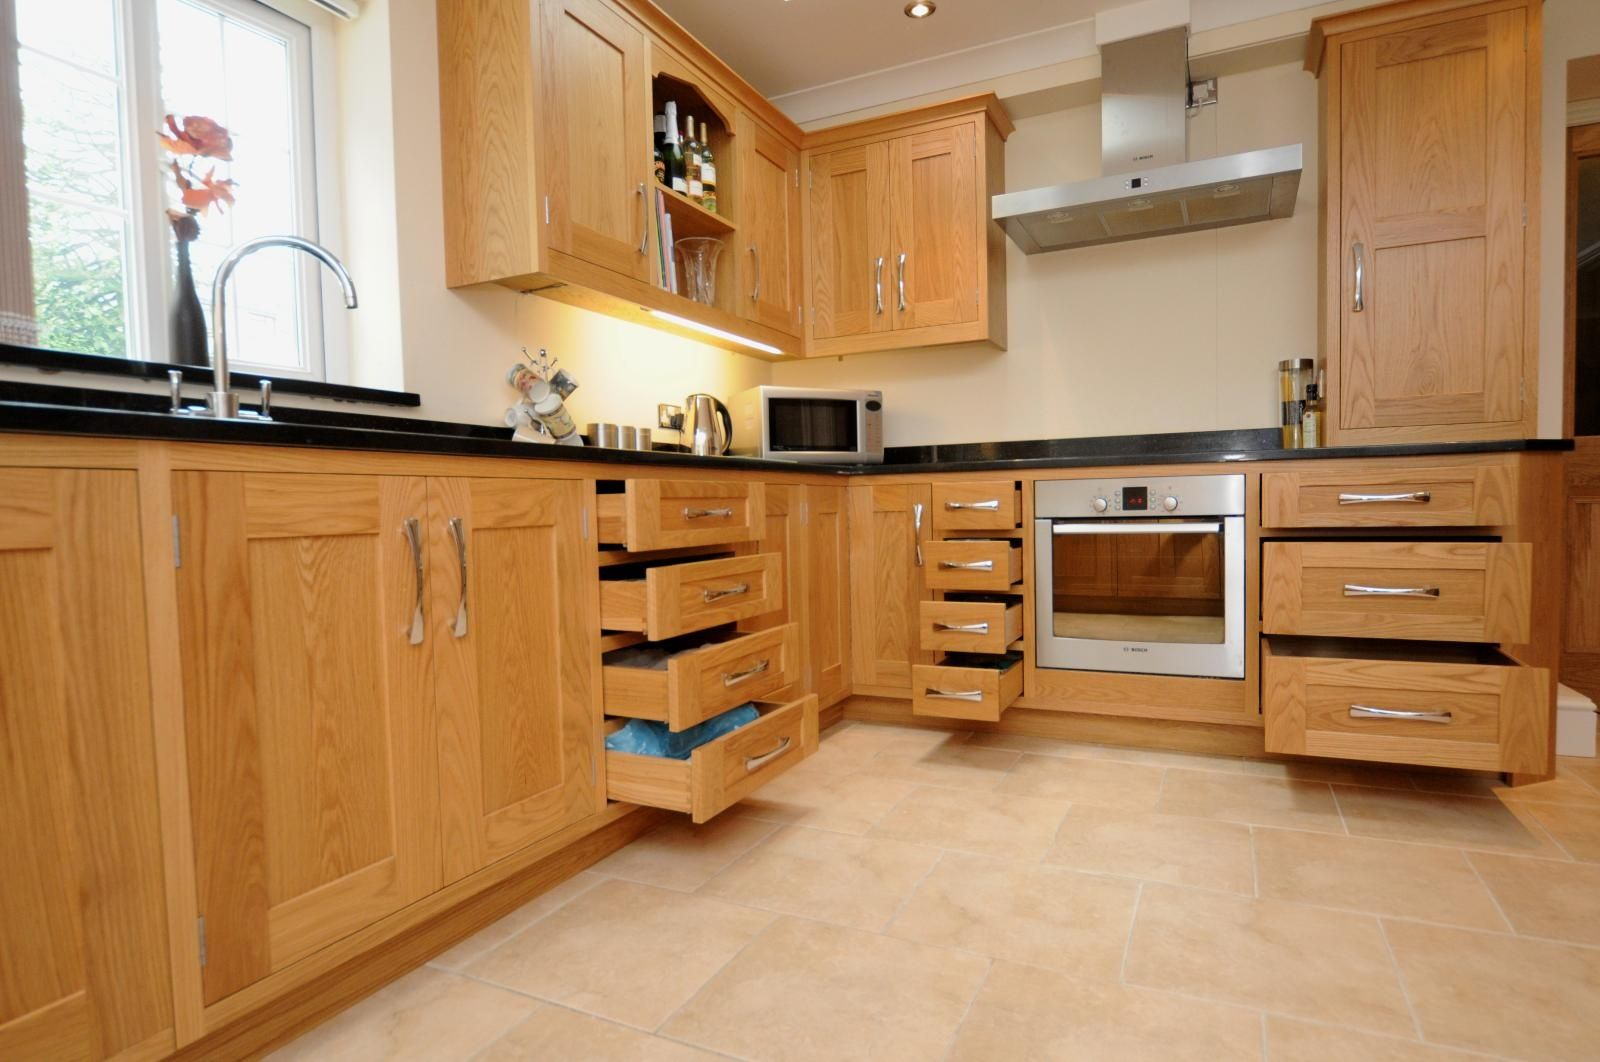 Image Result For Natural Maple Cabinets With Granite Countertops Beautiful Kitchen Cabinets Modern Kitchen Cupboards Kitchen Island Cabinets